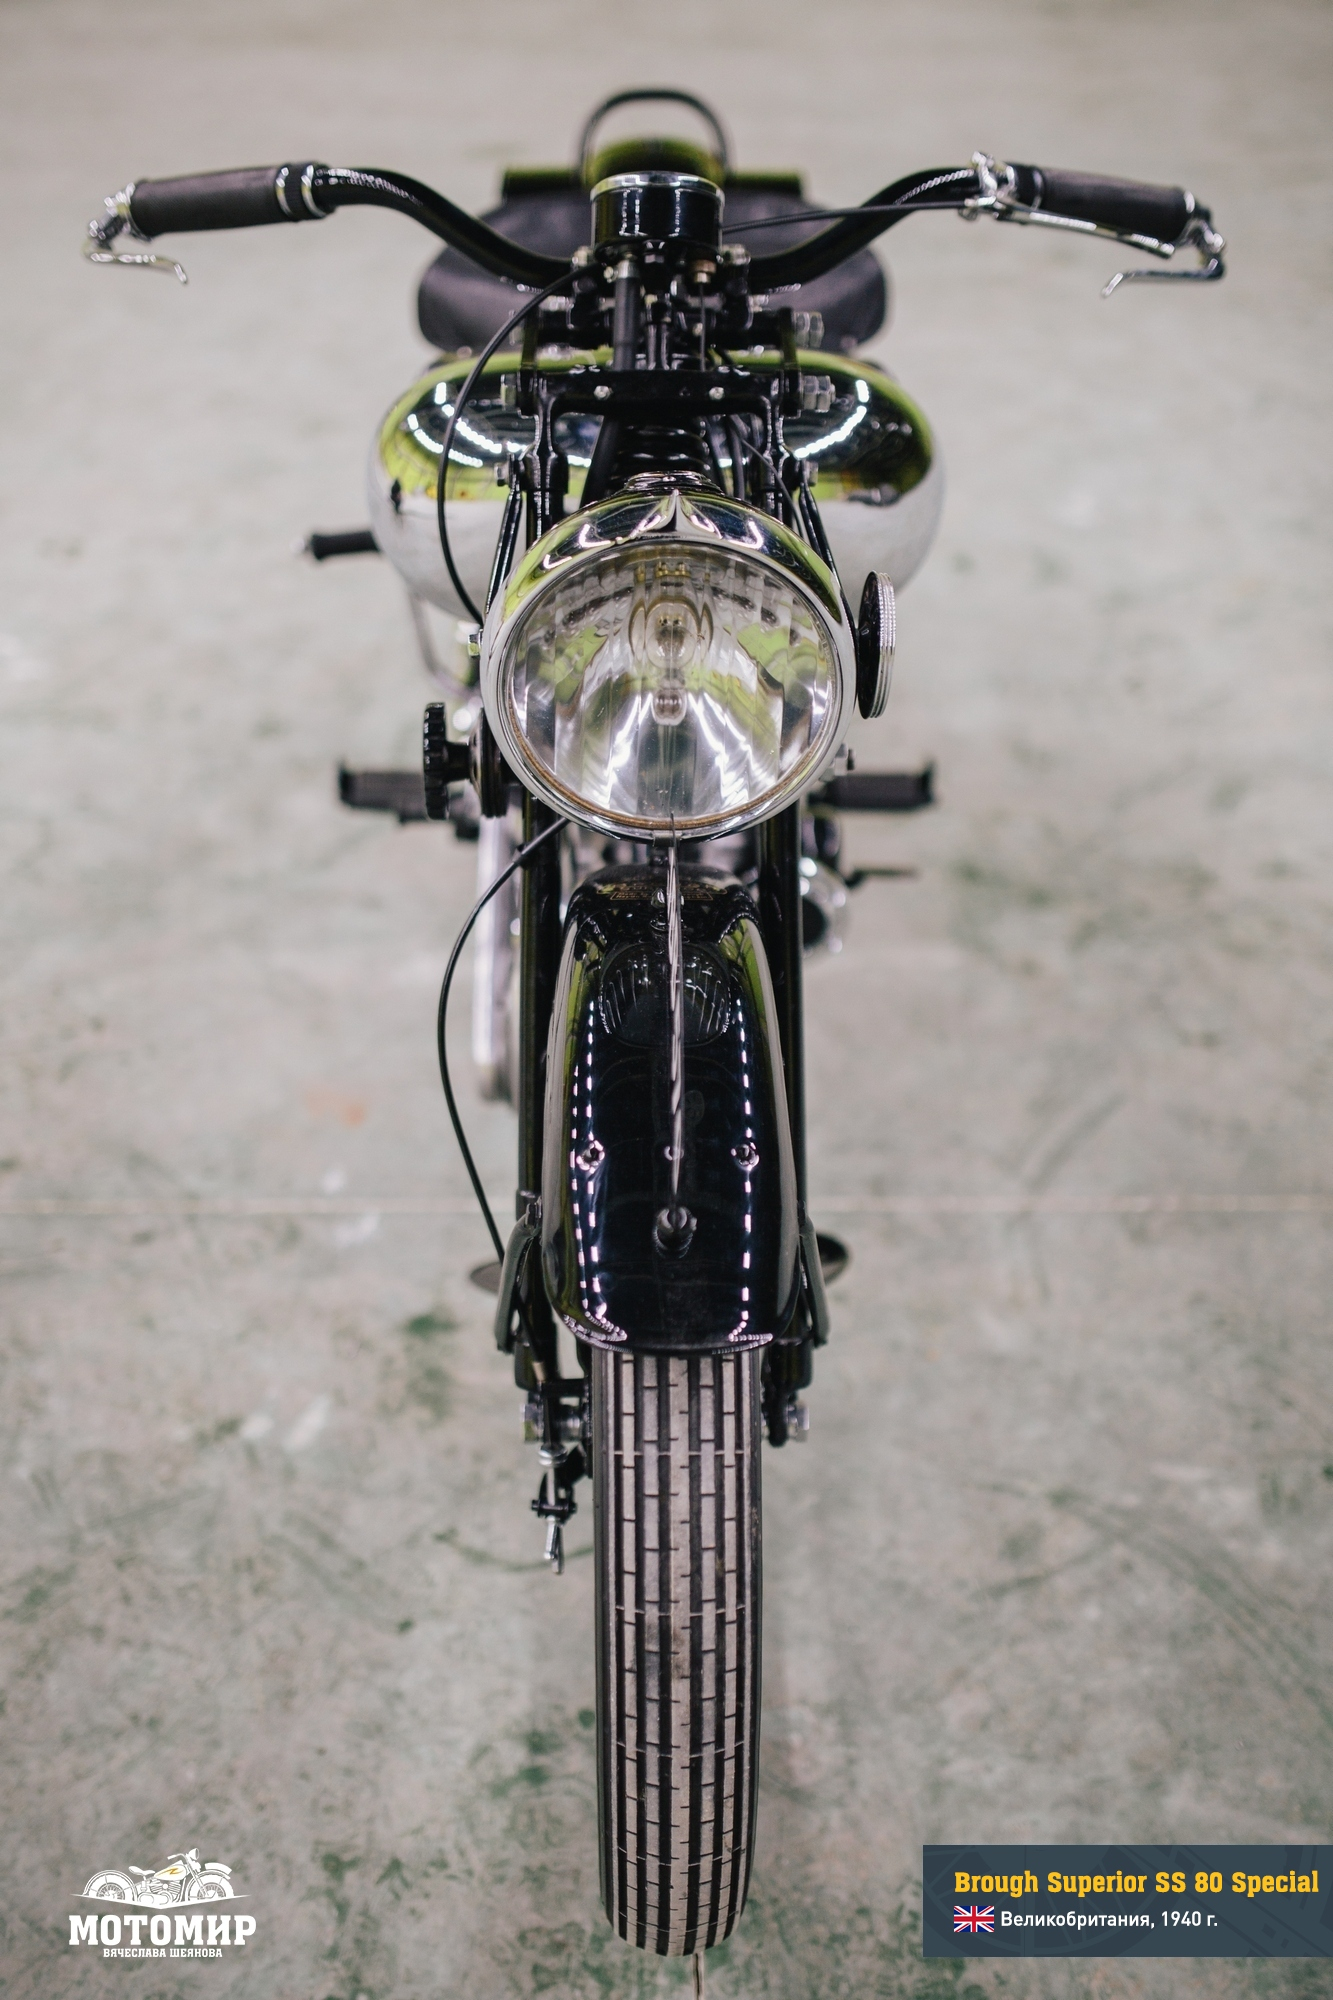 brough-superior-ss-80-201502-web-29